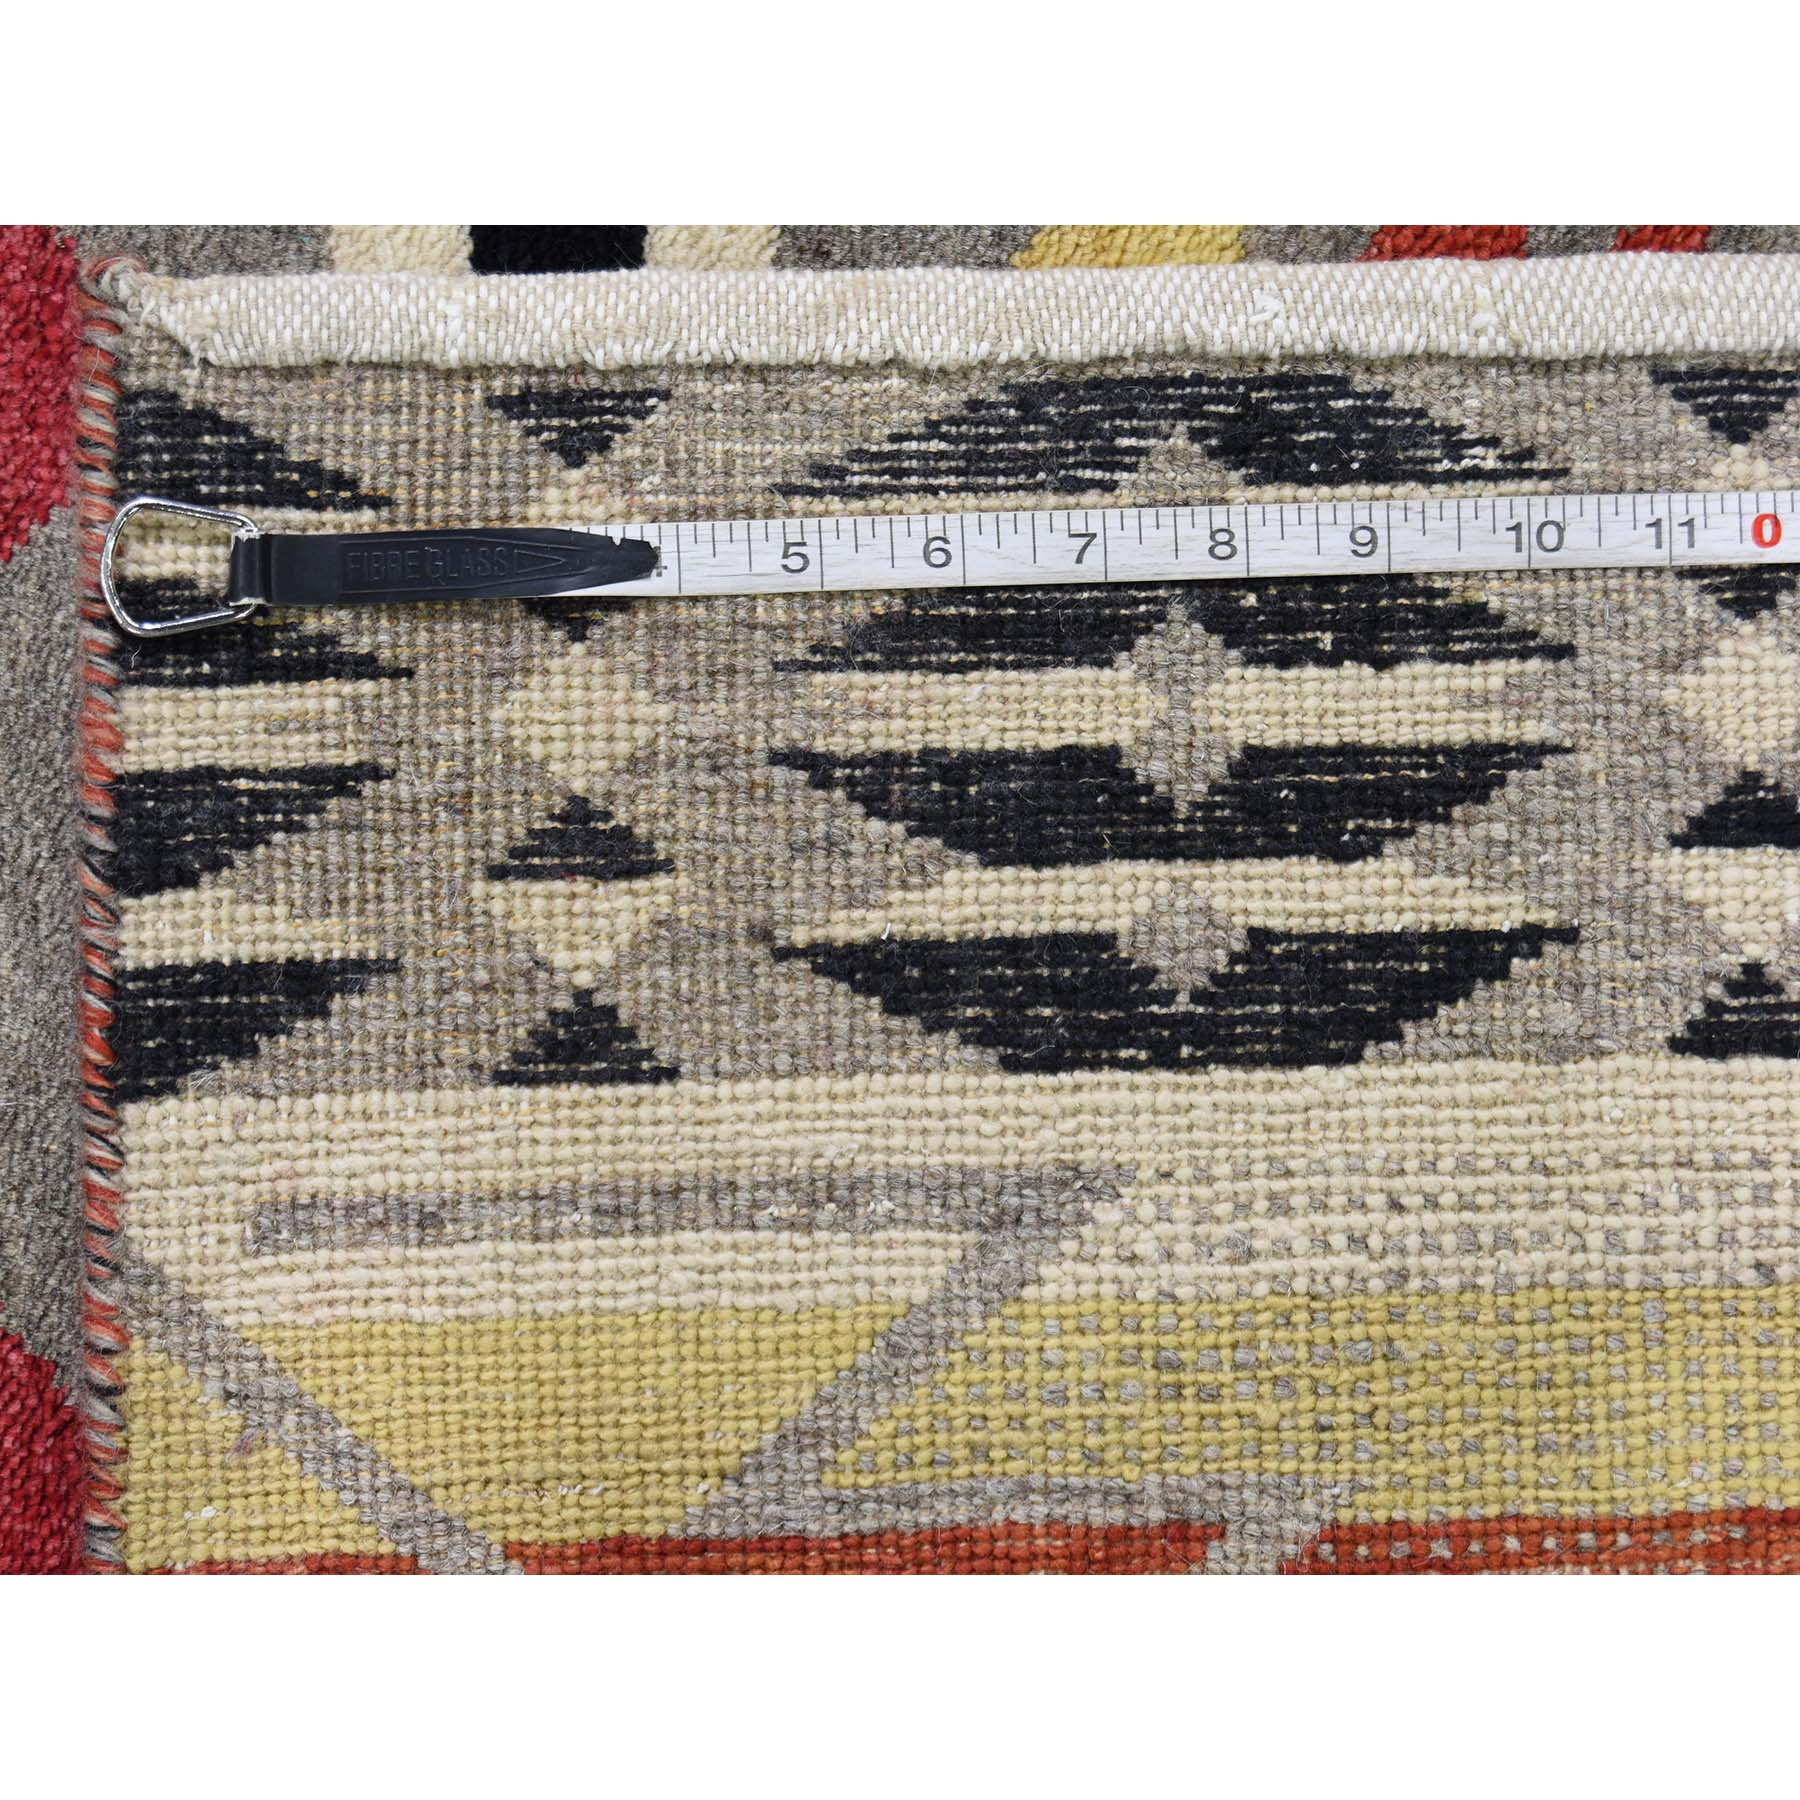 8-10 x12- Hand-Knotted Berber Motifs Design Pure Wool Hand Knotted Oriental Rug